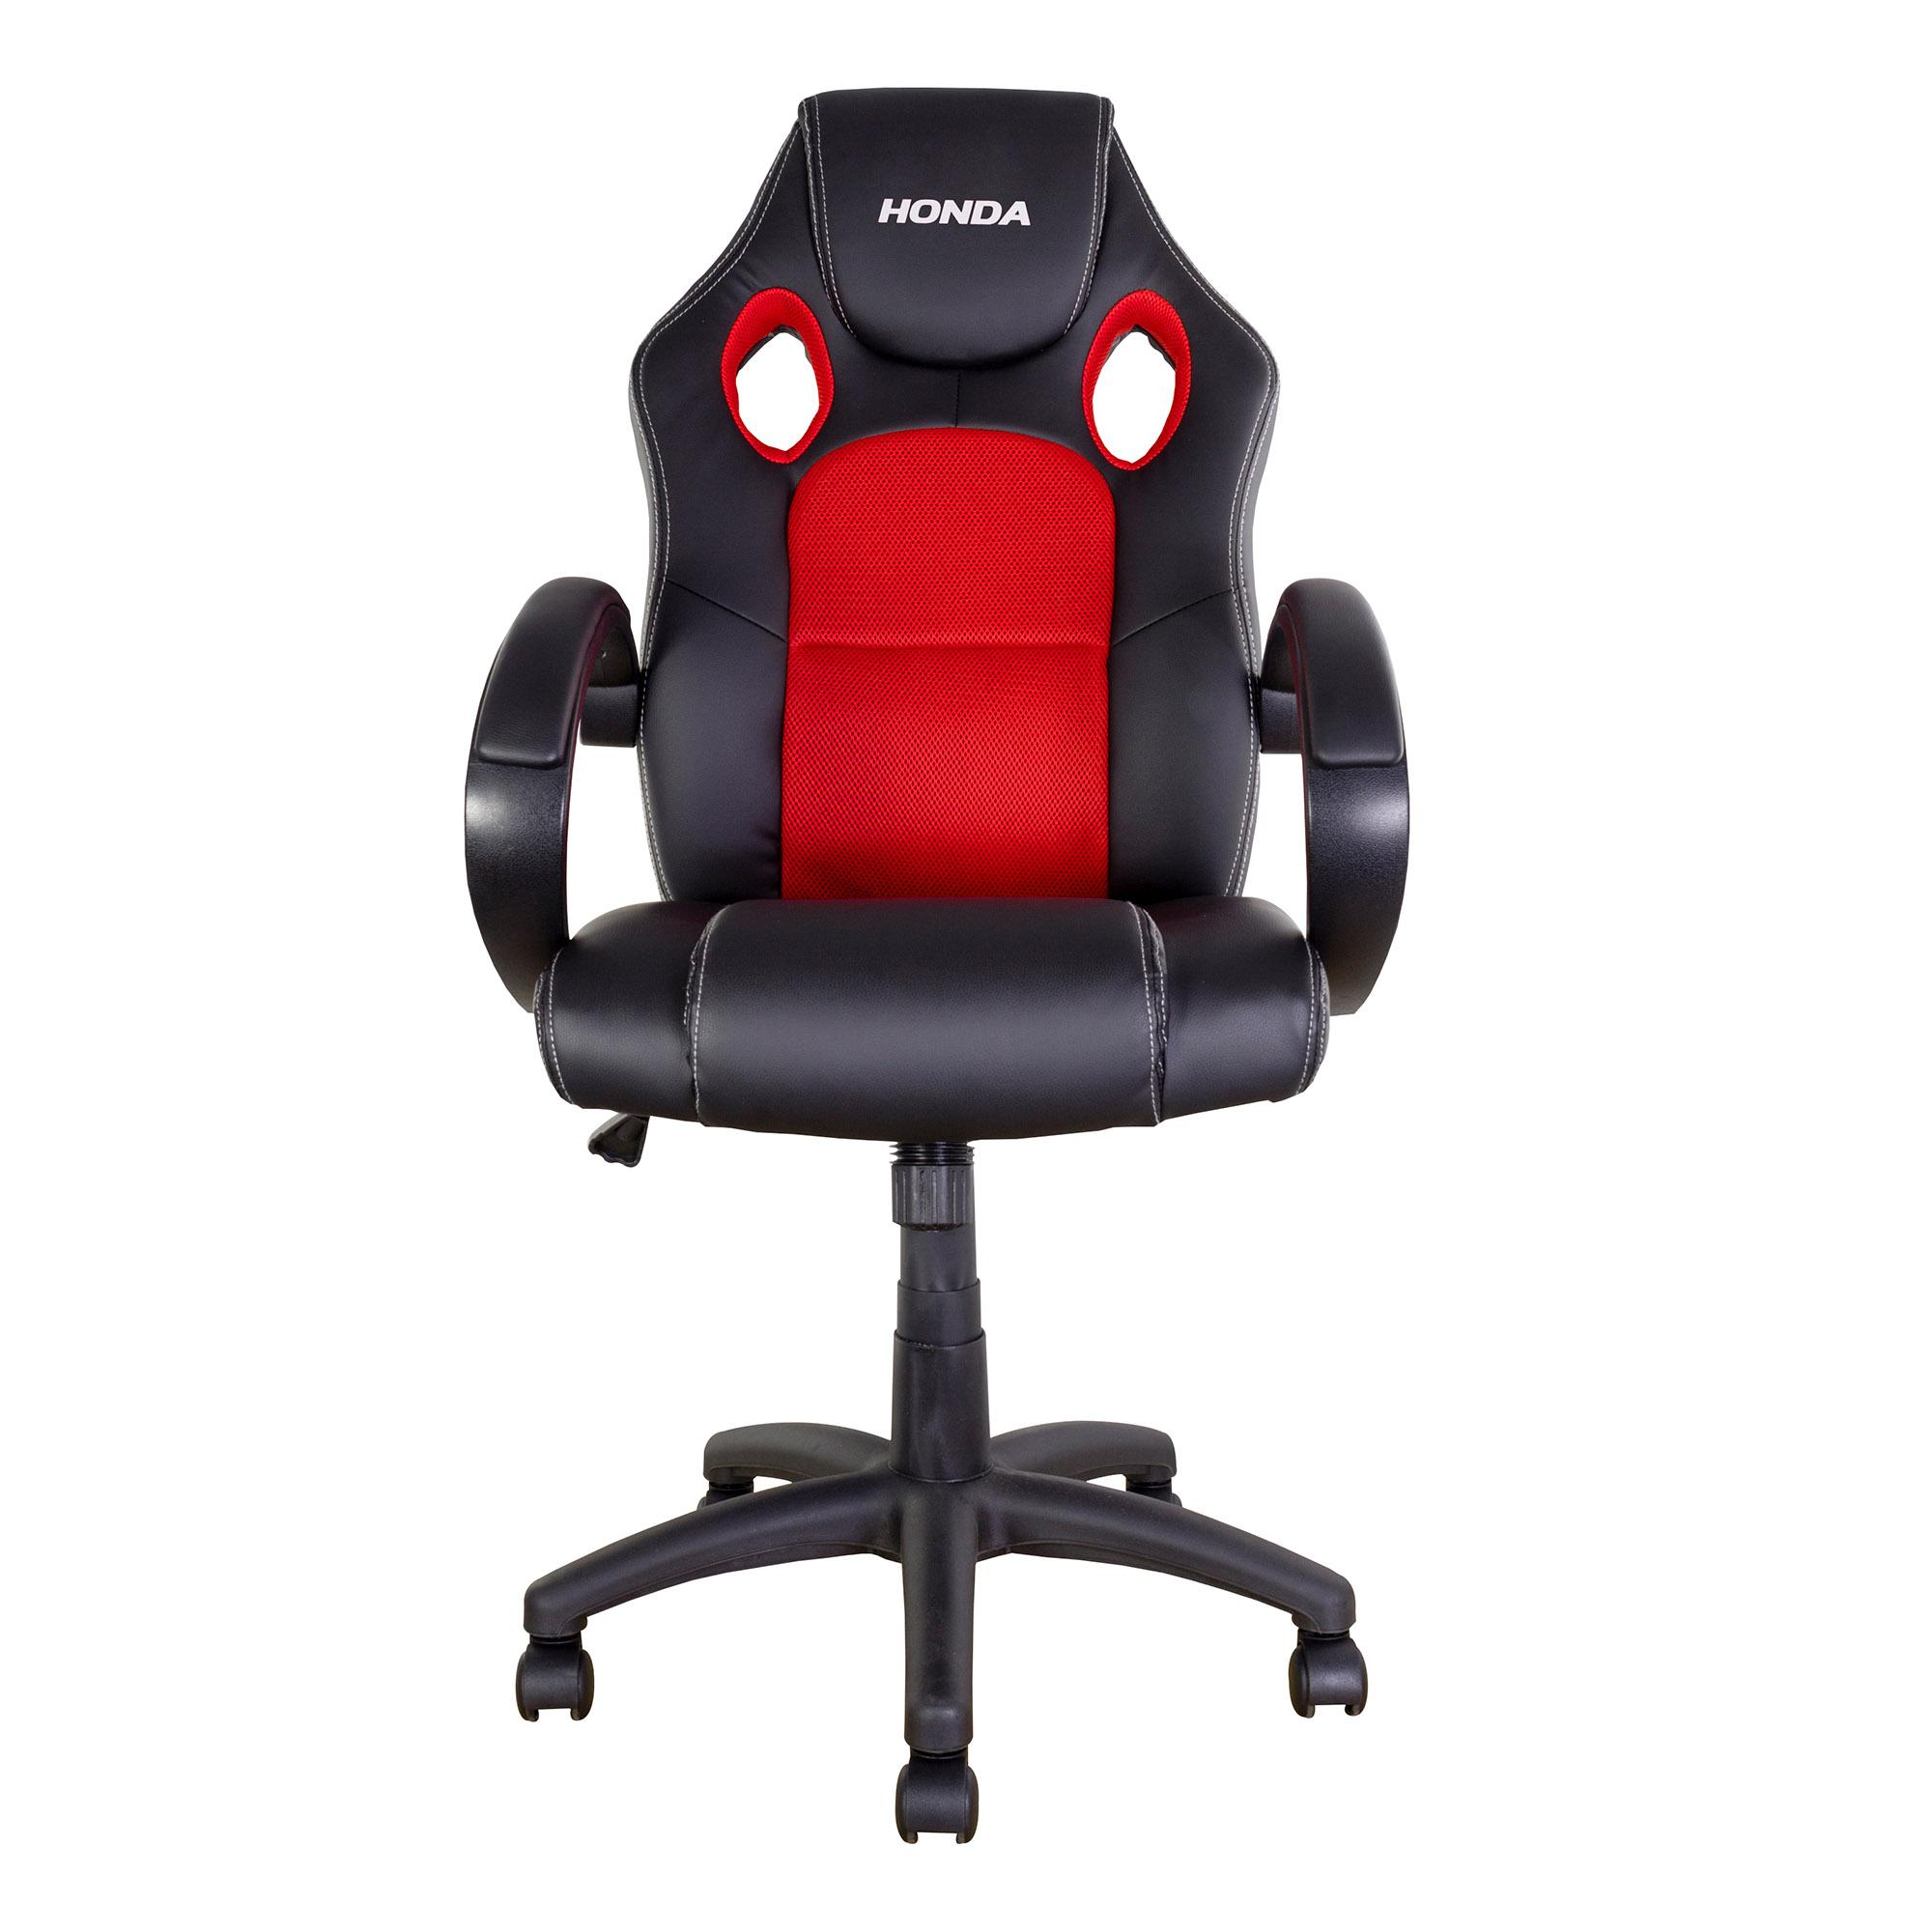 RIDER CHAIR - Honda Red with Black trim